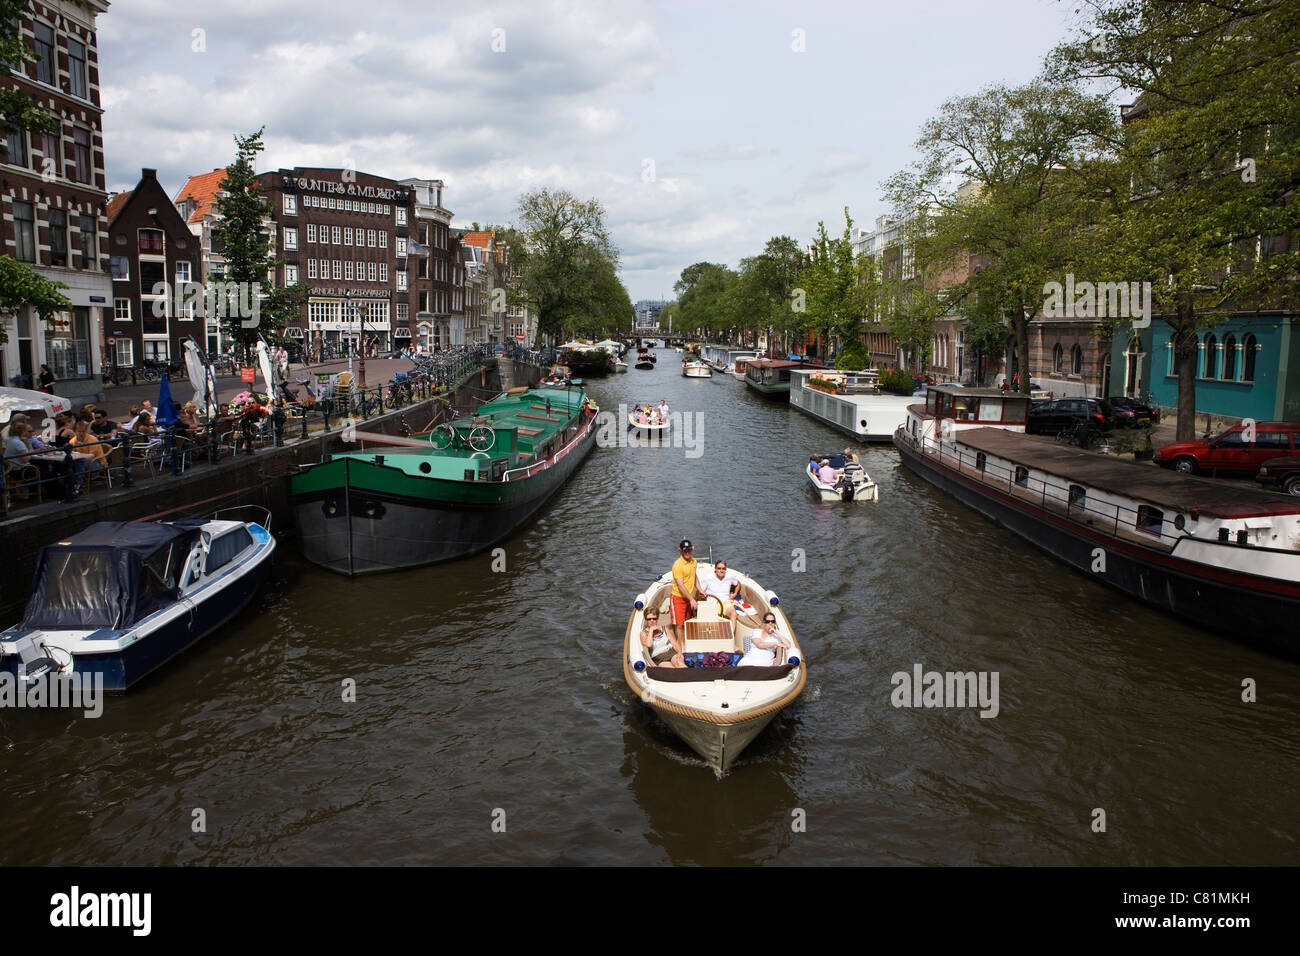 Boats sailing on canal in Amsterdam - Stock Image